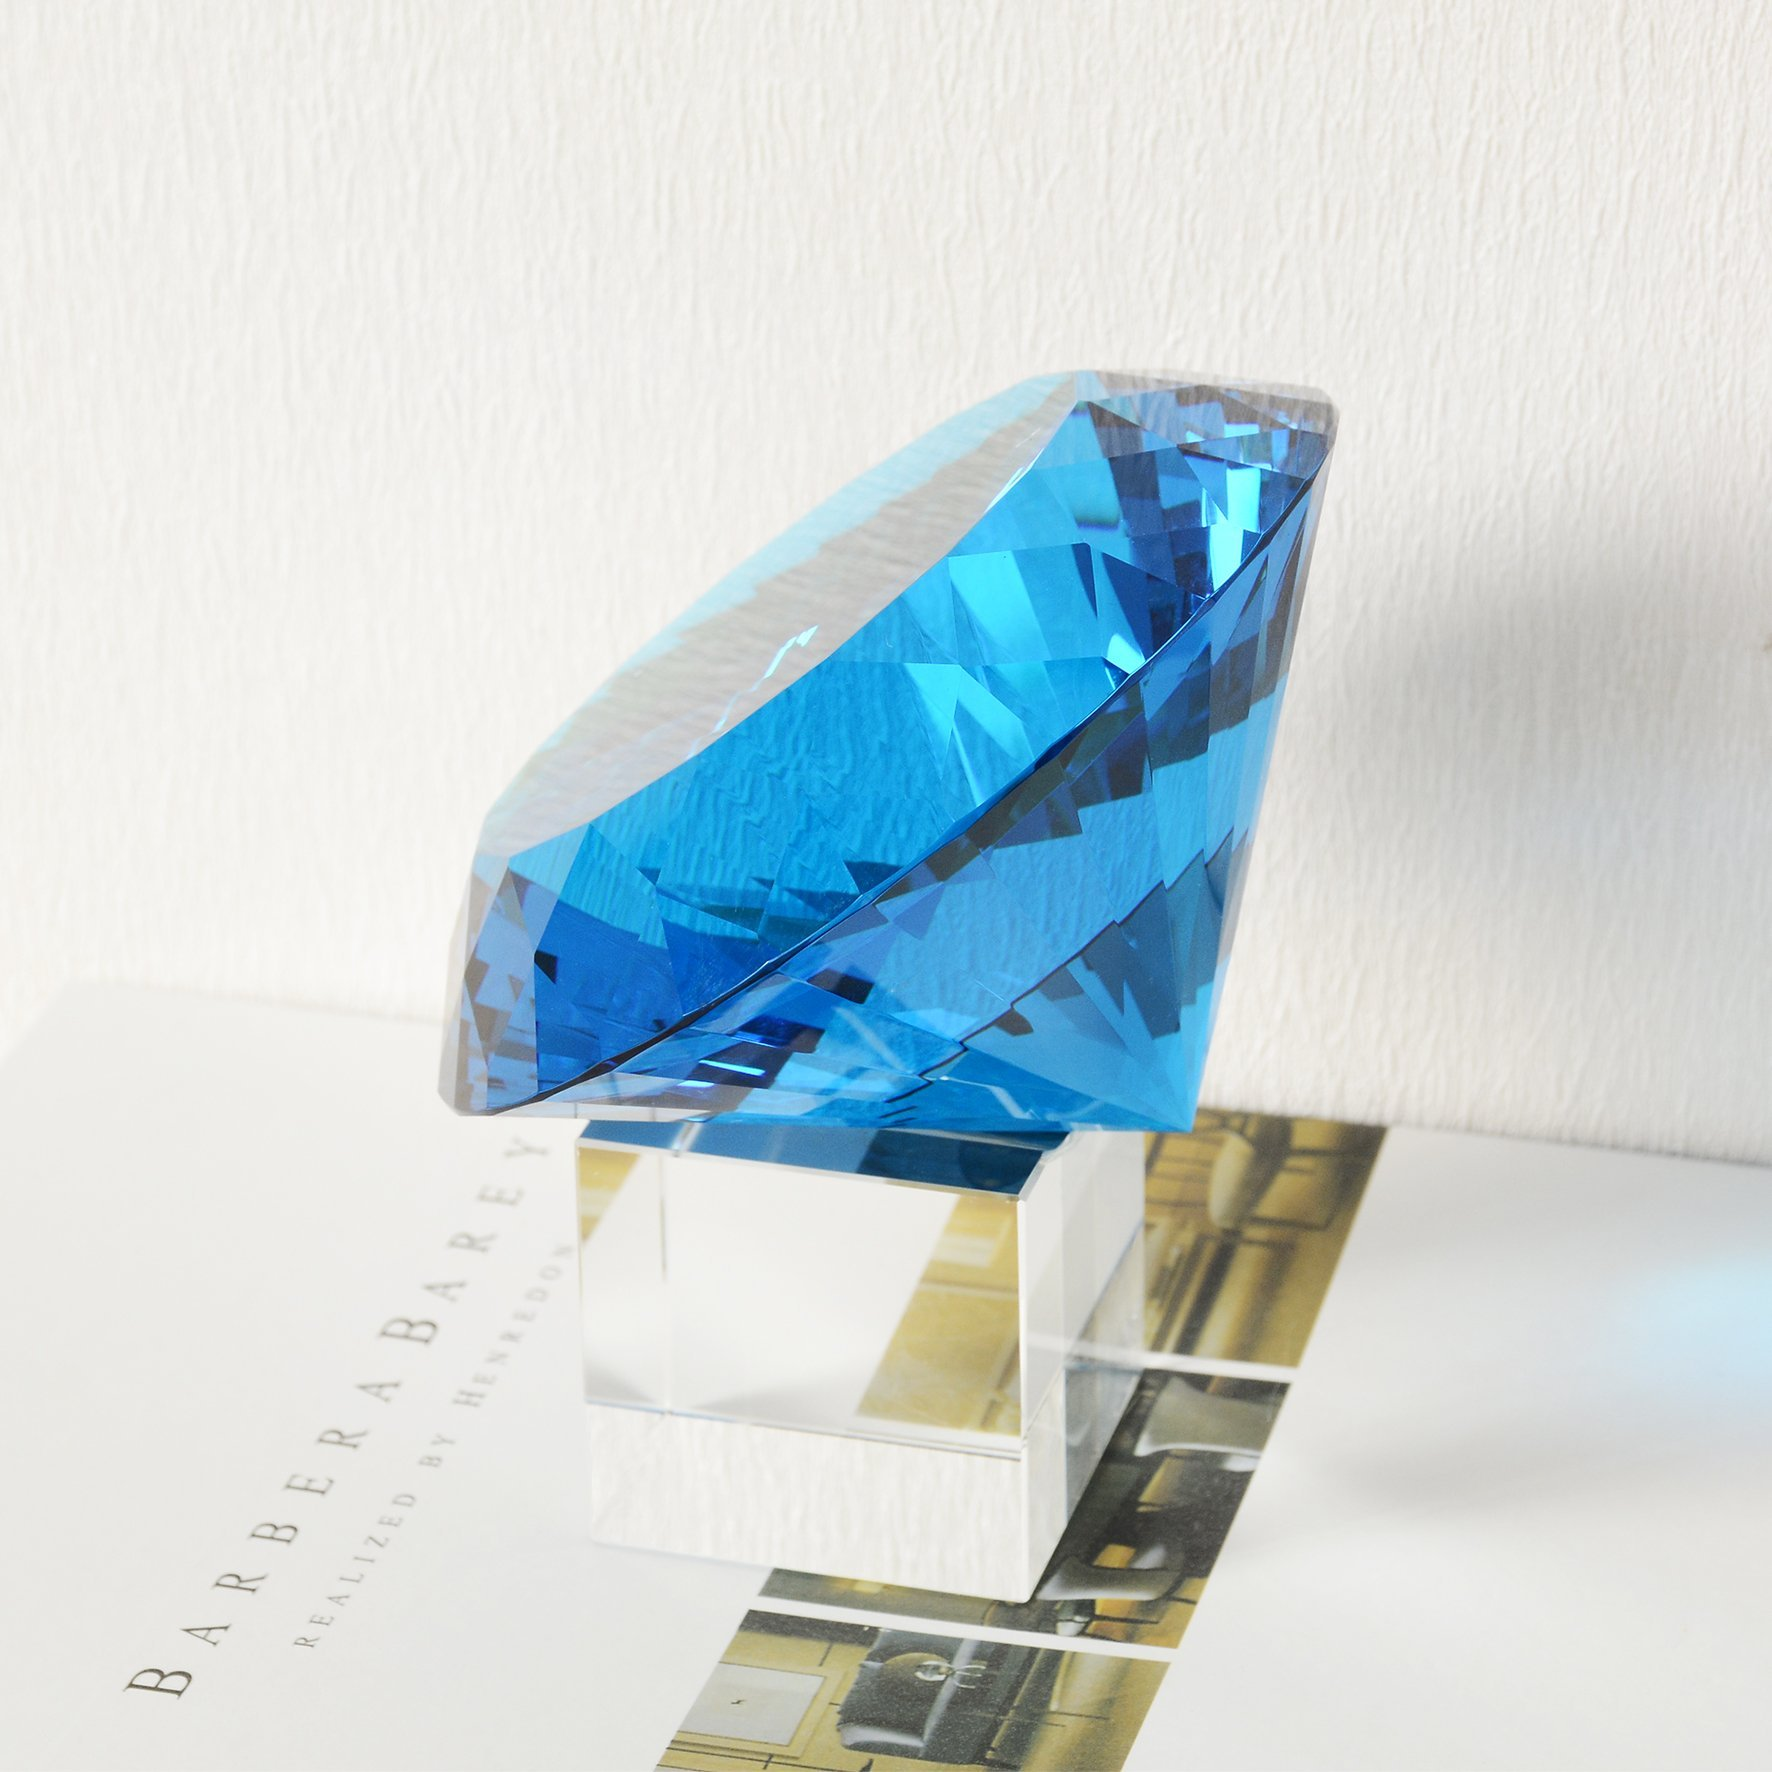 BRLIGHTING Cobalt Blue crystal Diamond Paperweight on stand for Office, Lovely Gift for Friends and Family (D120mm / 4.73'') by BRLIGHTING (Image #5)